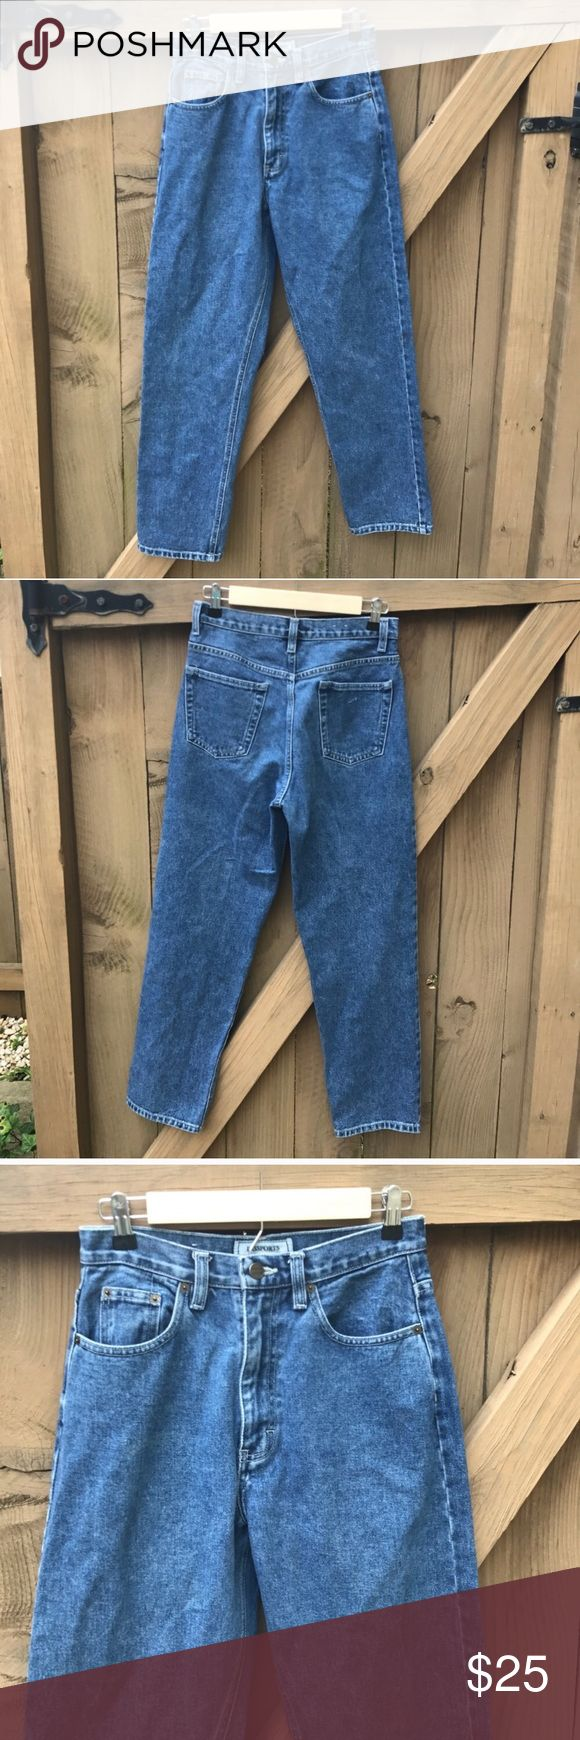 Passports size 6 high waisted mom jeans Passports size 6 high waisted mom jeans: 14 in across waist, 16.5 in across hip, 28 in inseam: location- bin 10 Passport Jeans Straight Leg